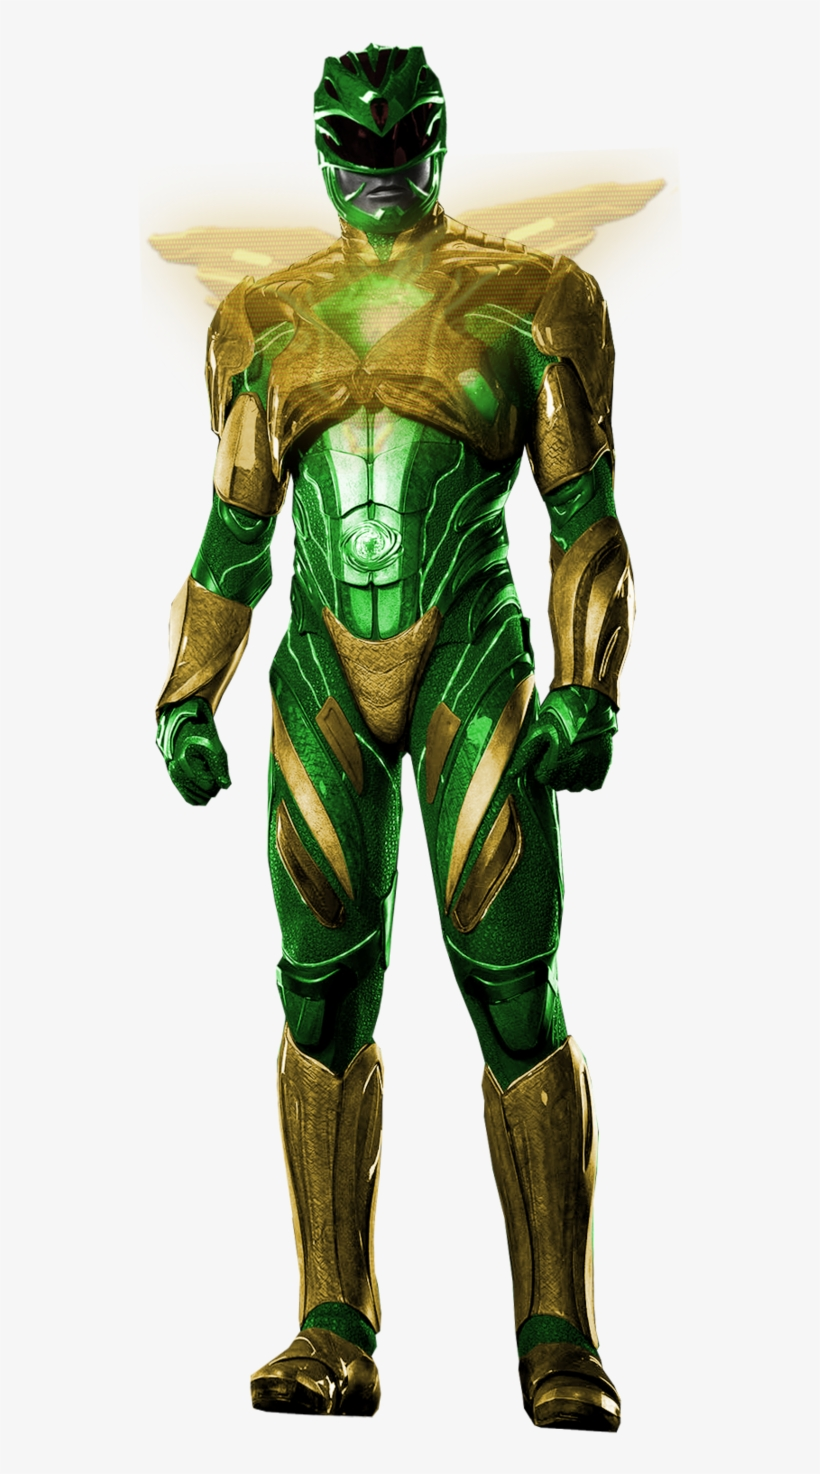 Green Power Ranger 2017 - Power Rangers Green Ranger 2019, transparent png #2794058